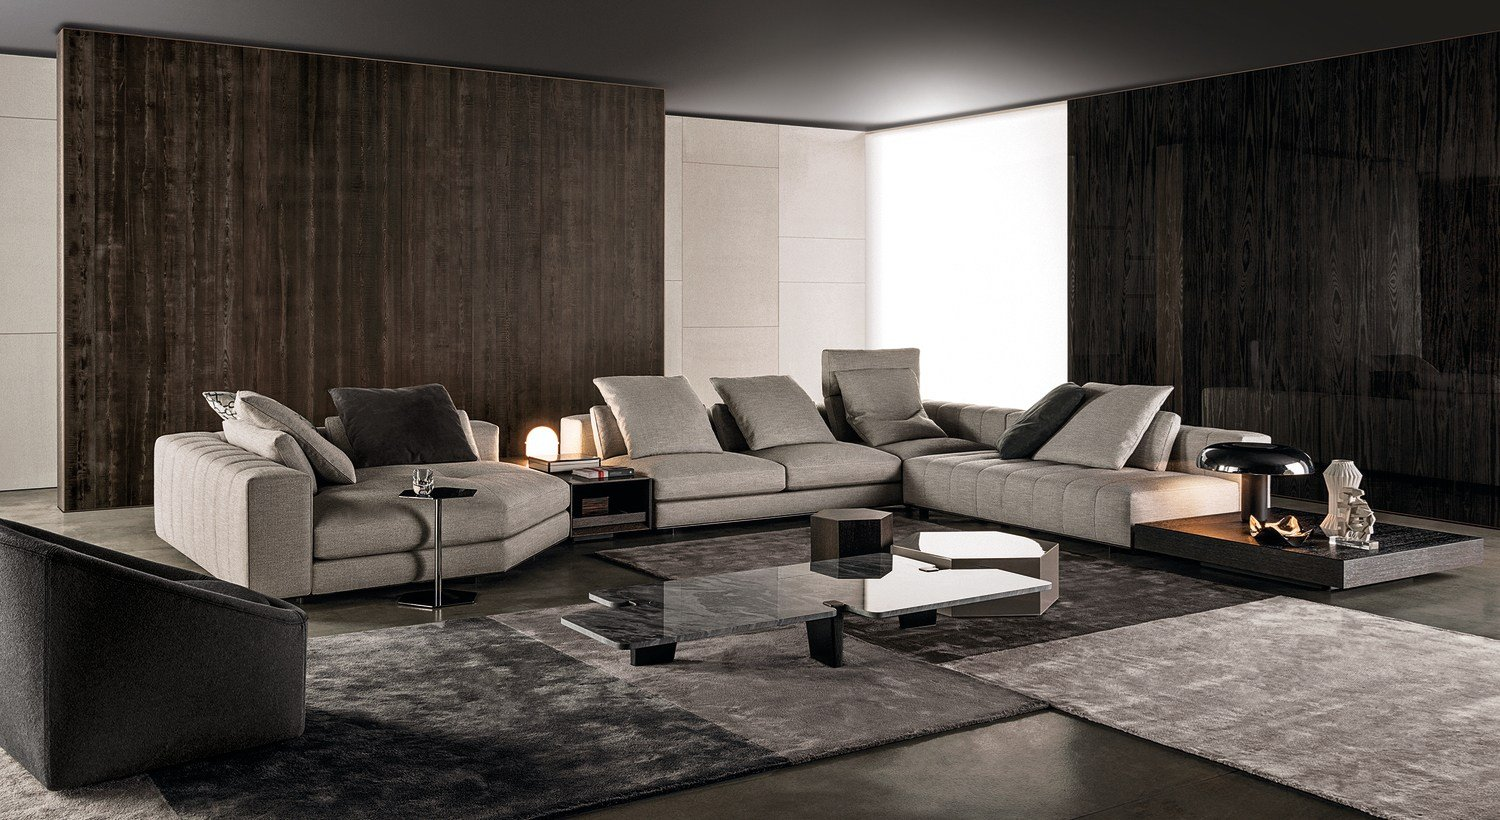 Sofa FREEMAN SEATING SYSTEM By Minotti